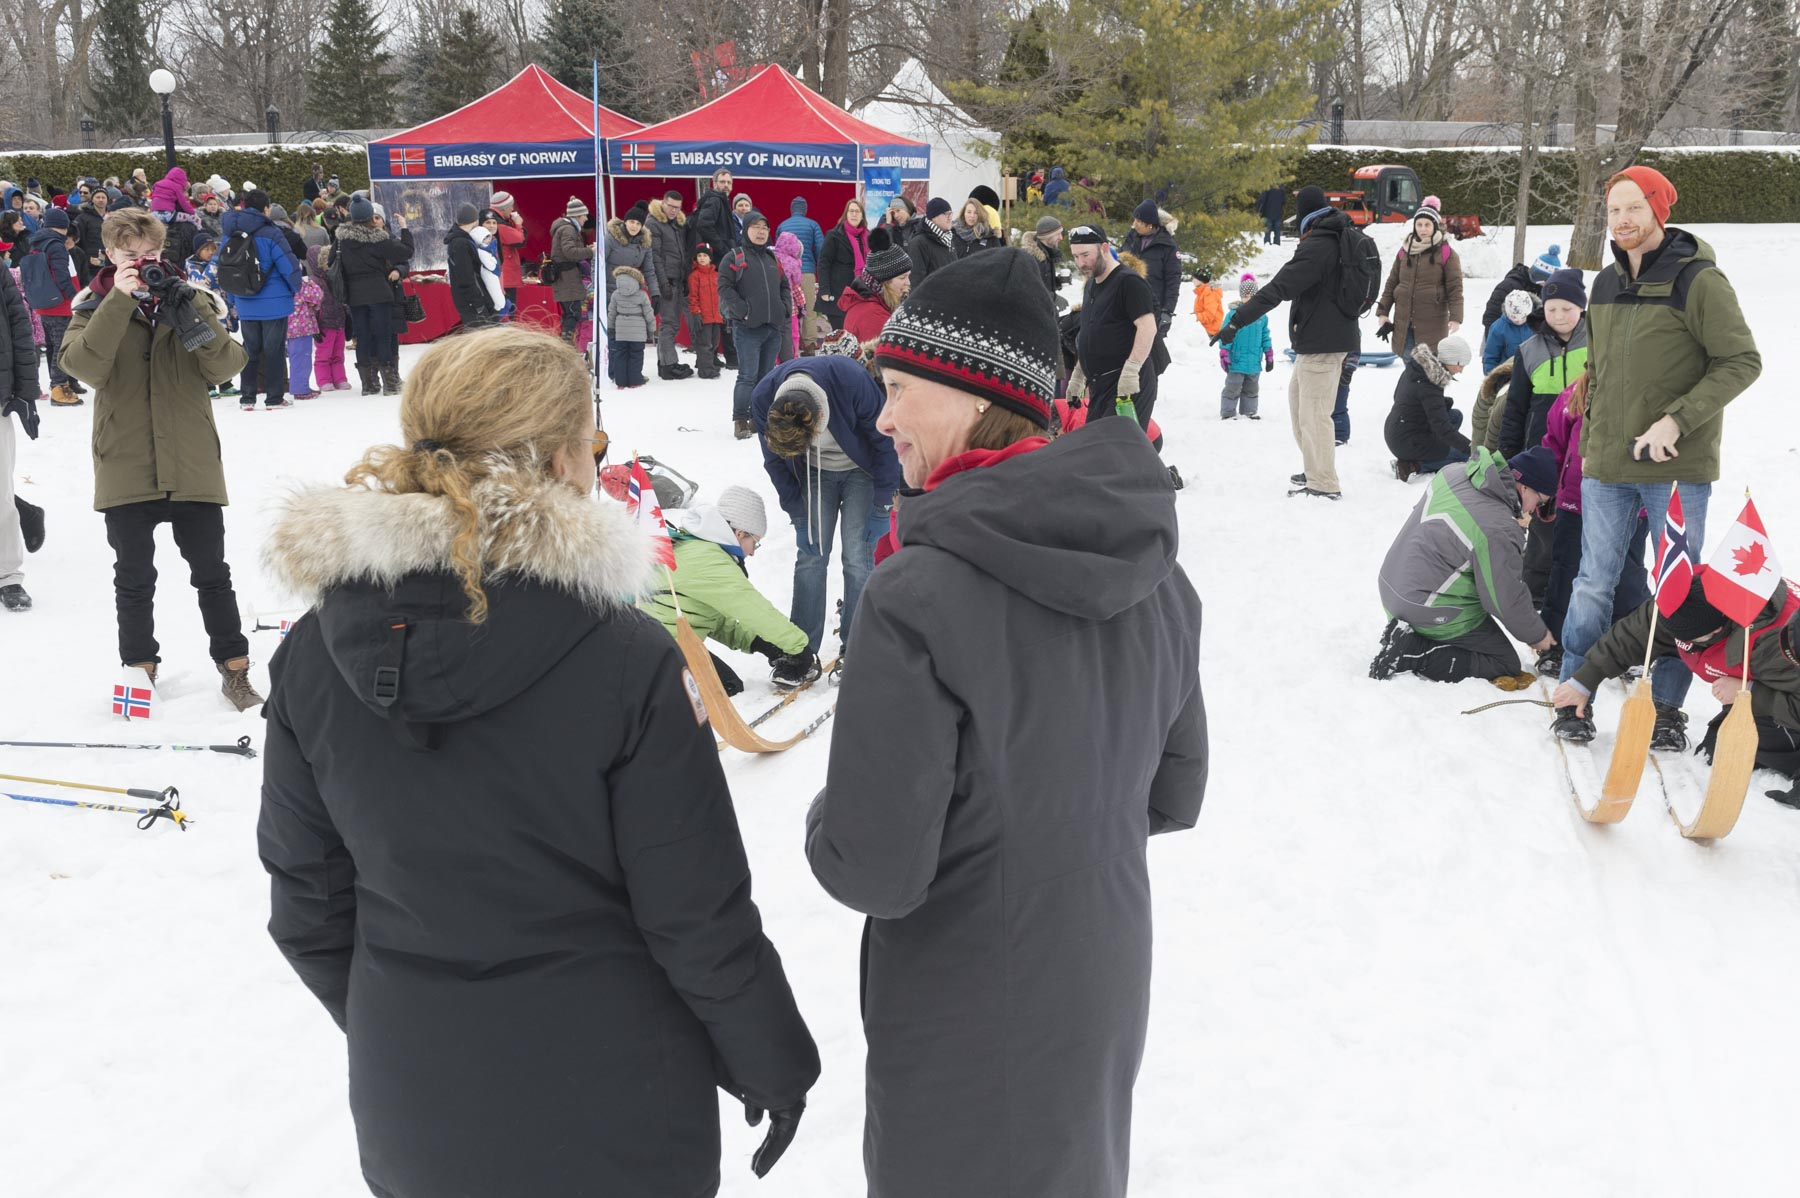 Governor General Julie Payette stopped by the Giant Norwegian ski to encouraged participants. she chatted with Ambassador of Norway, Her Excellency Anne Kari H. Ovind.